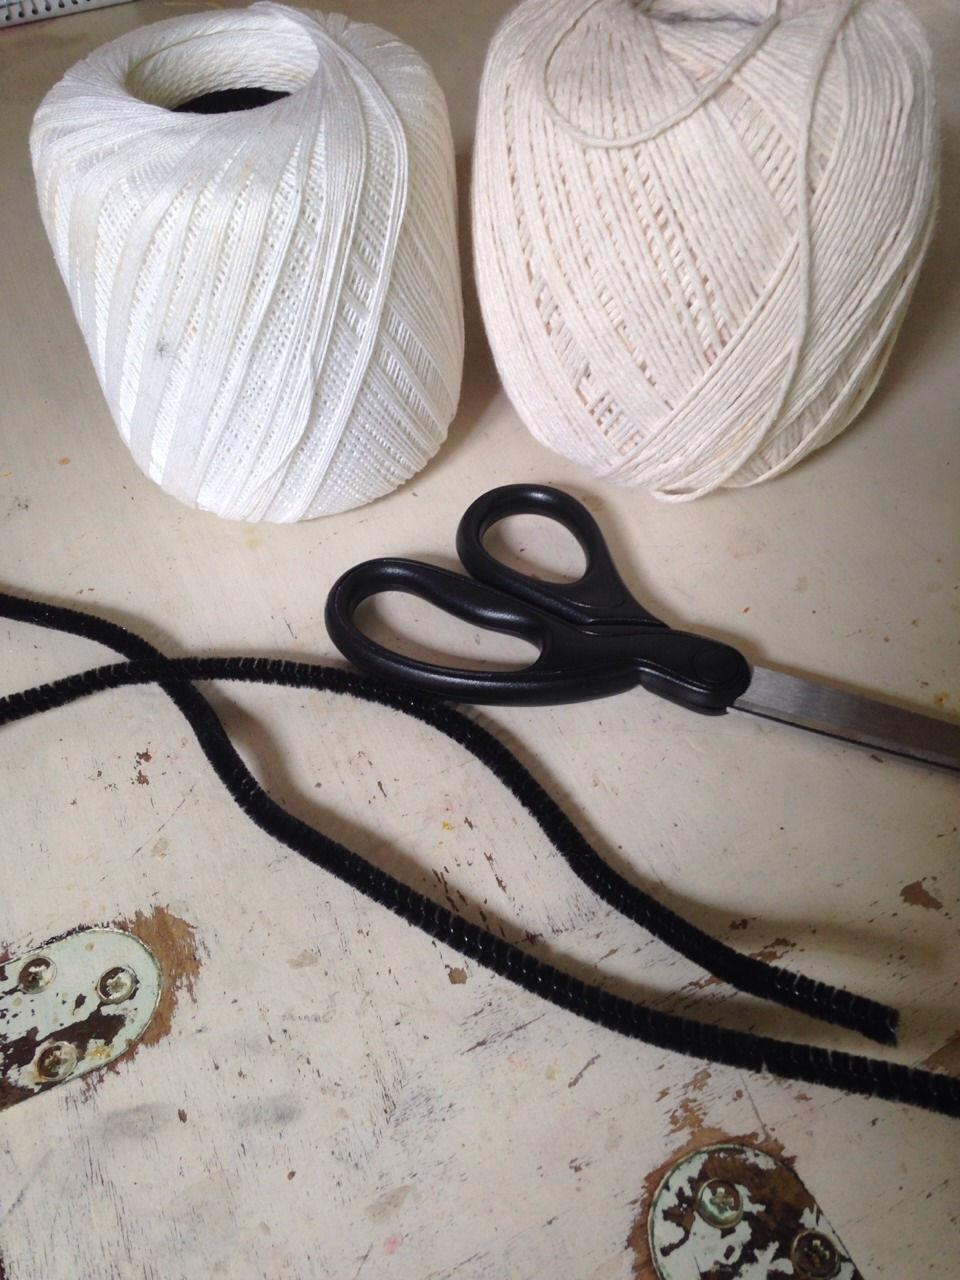 You will need thick and thin string, scissors, pipe cleaner (or wire), and beads and feathers